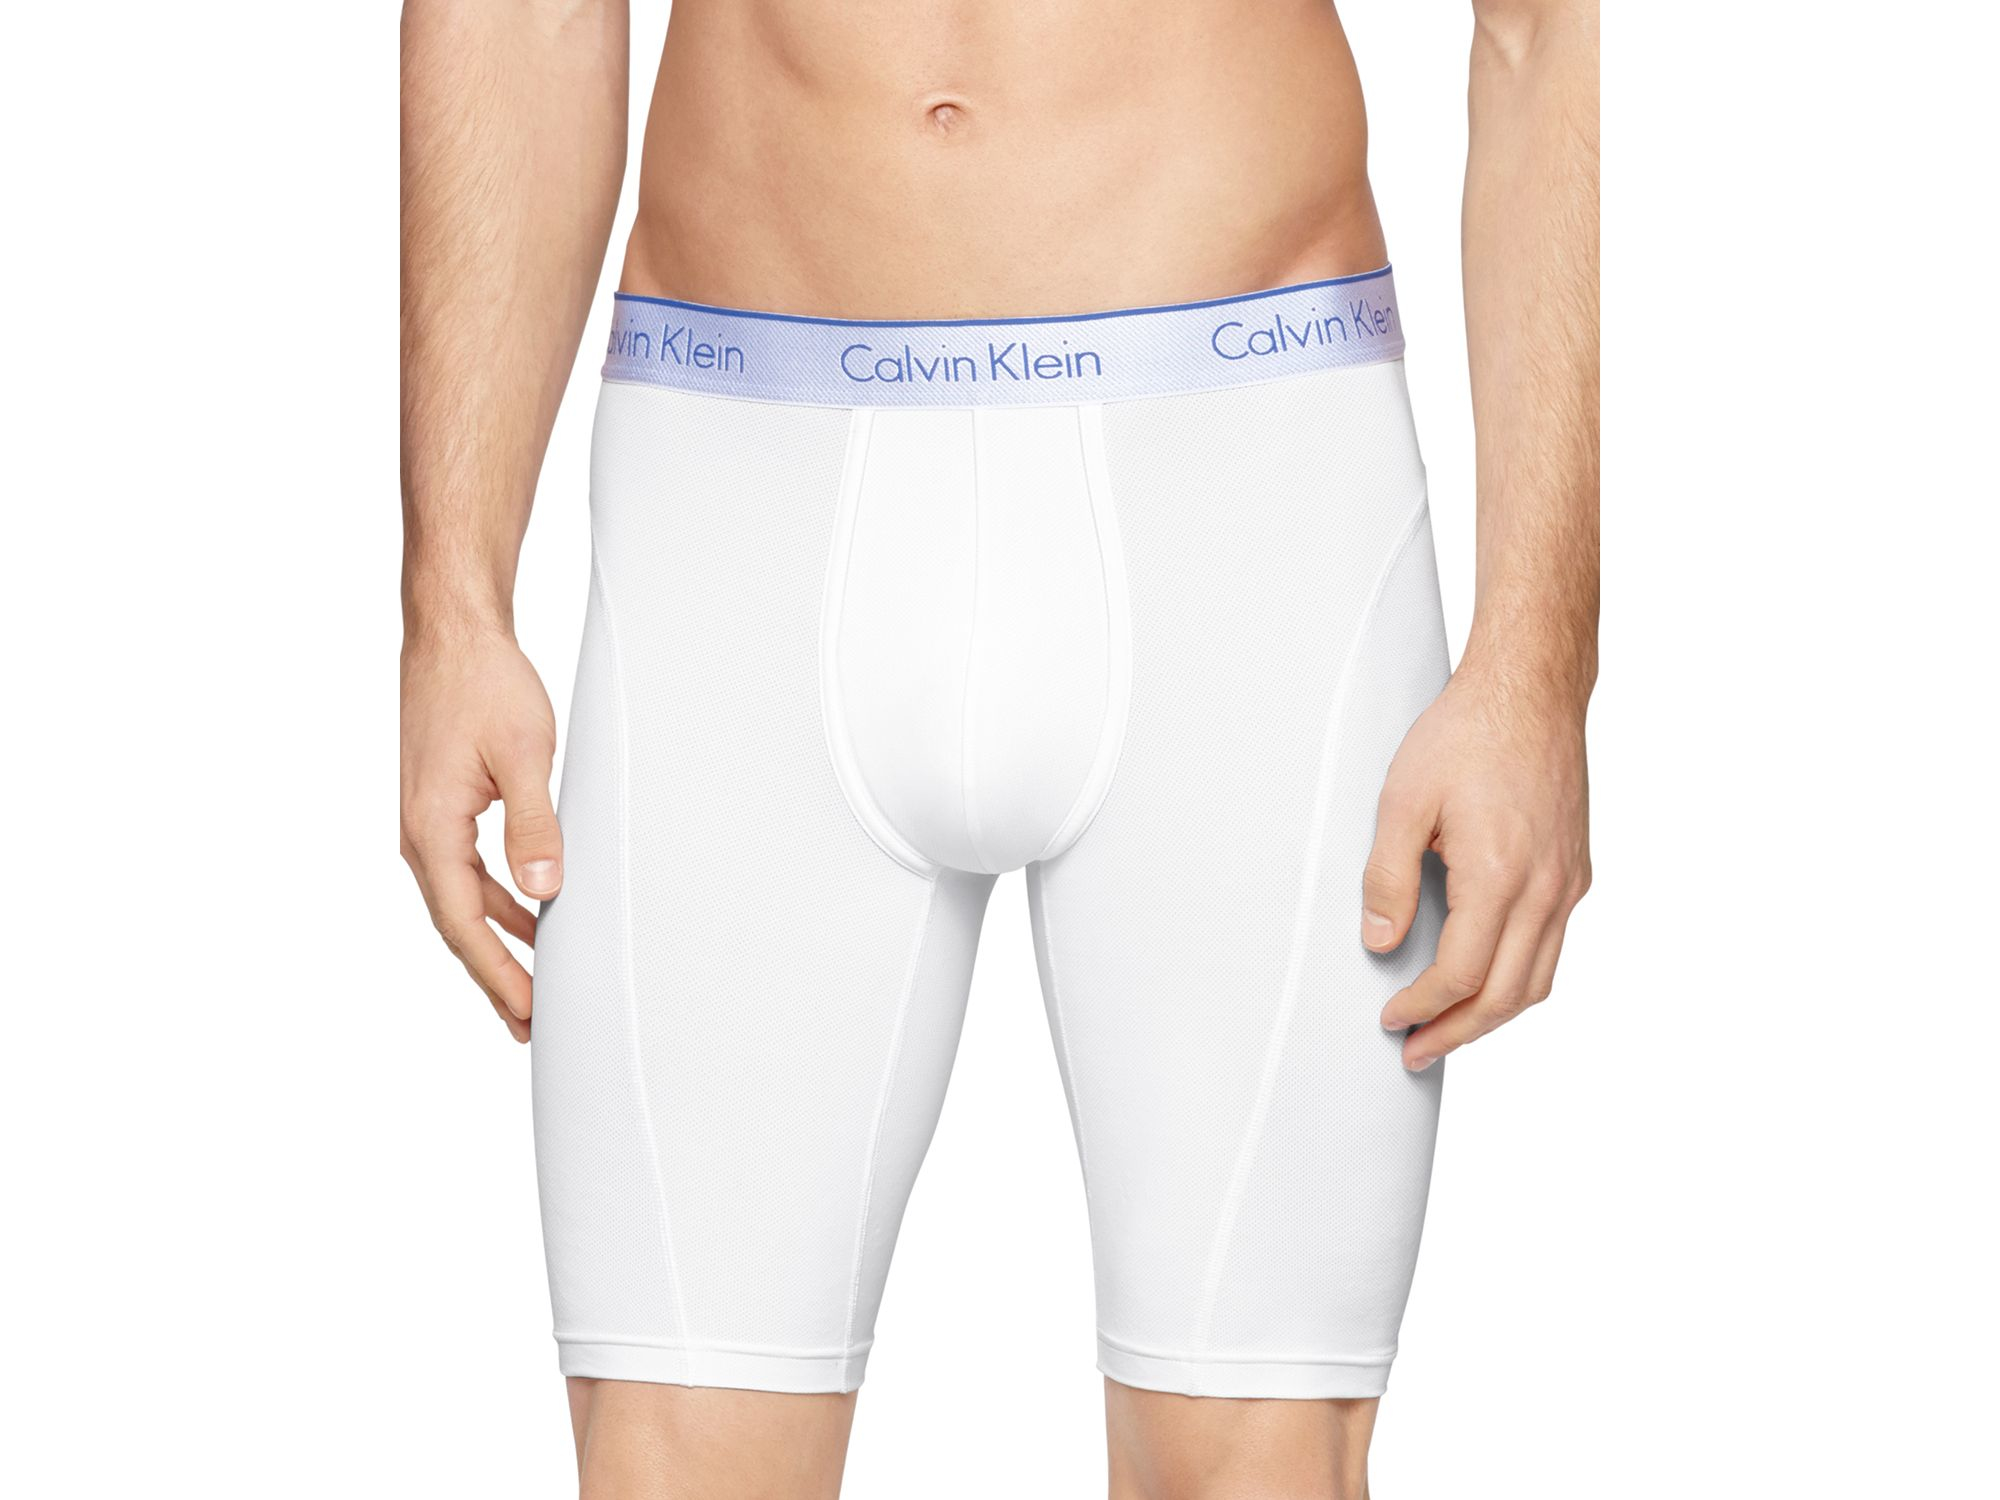 calvin klein air fx boxer briefs in white for men lyst. Black Bedroom Furniture Sets. Home Design Ideas